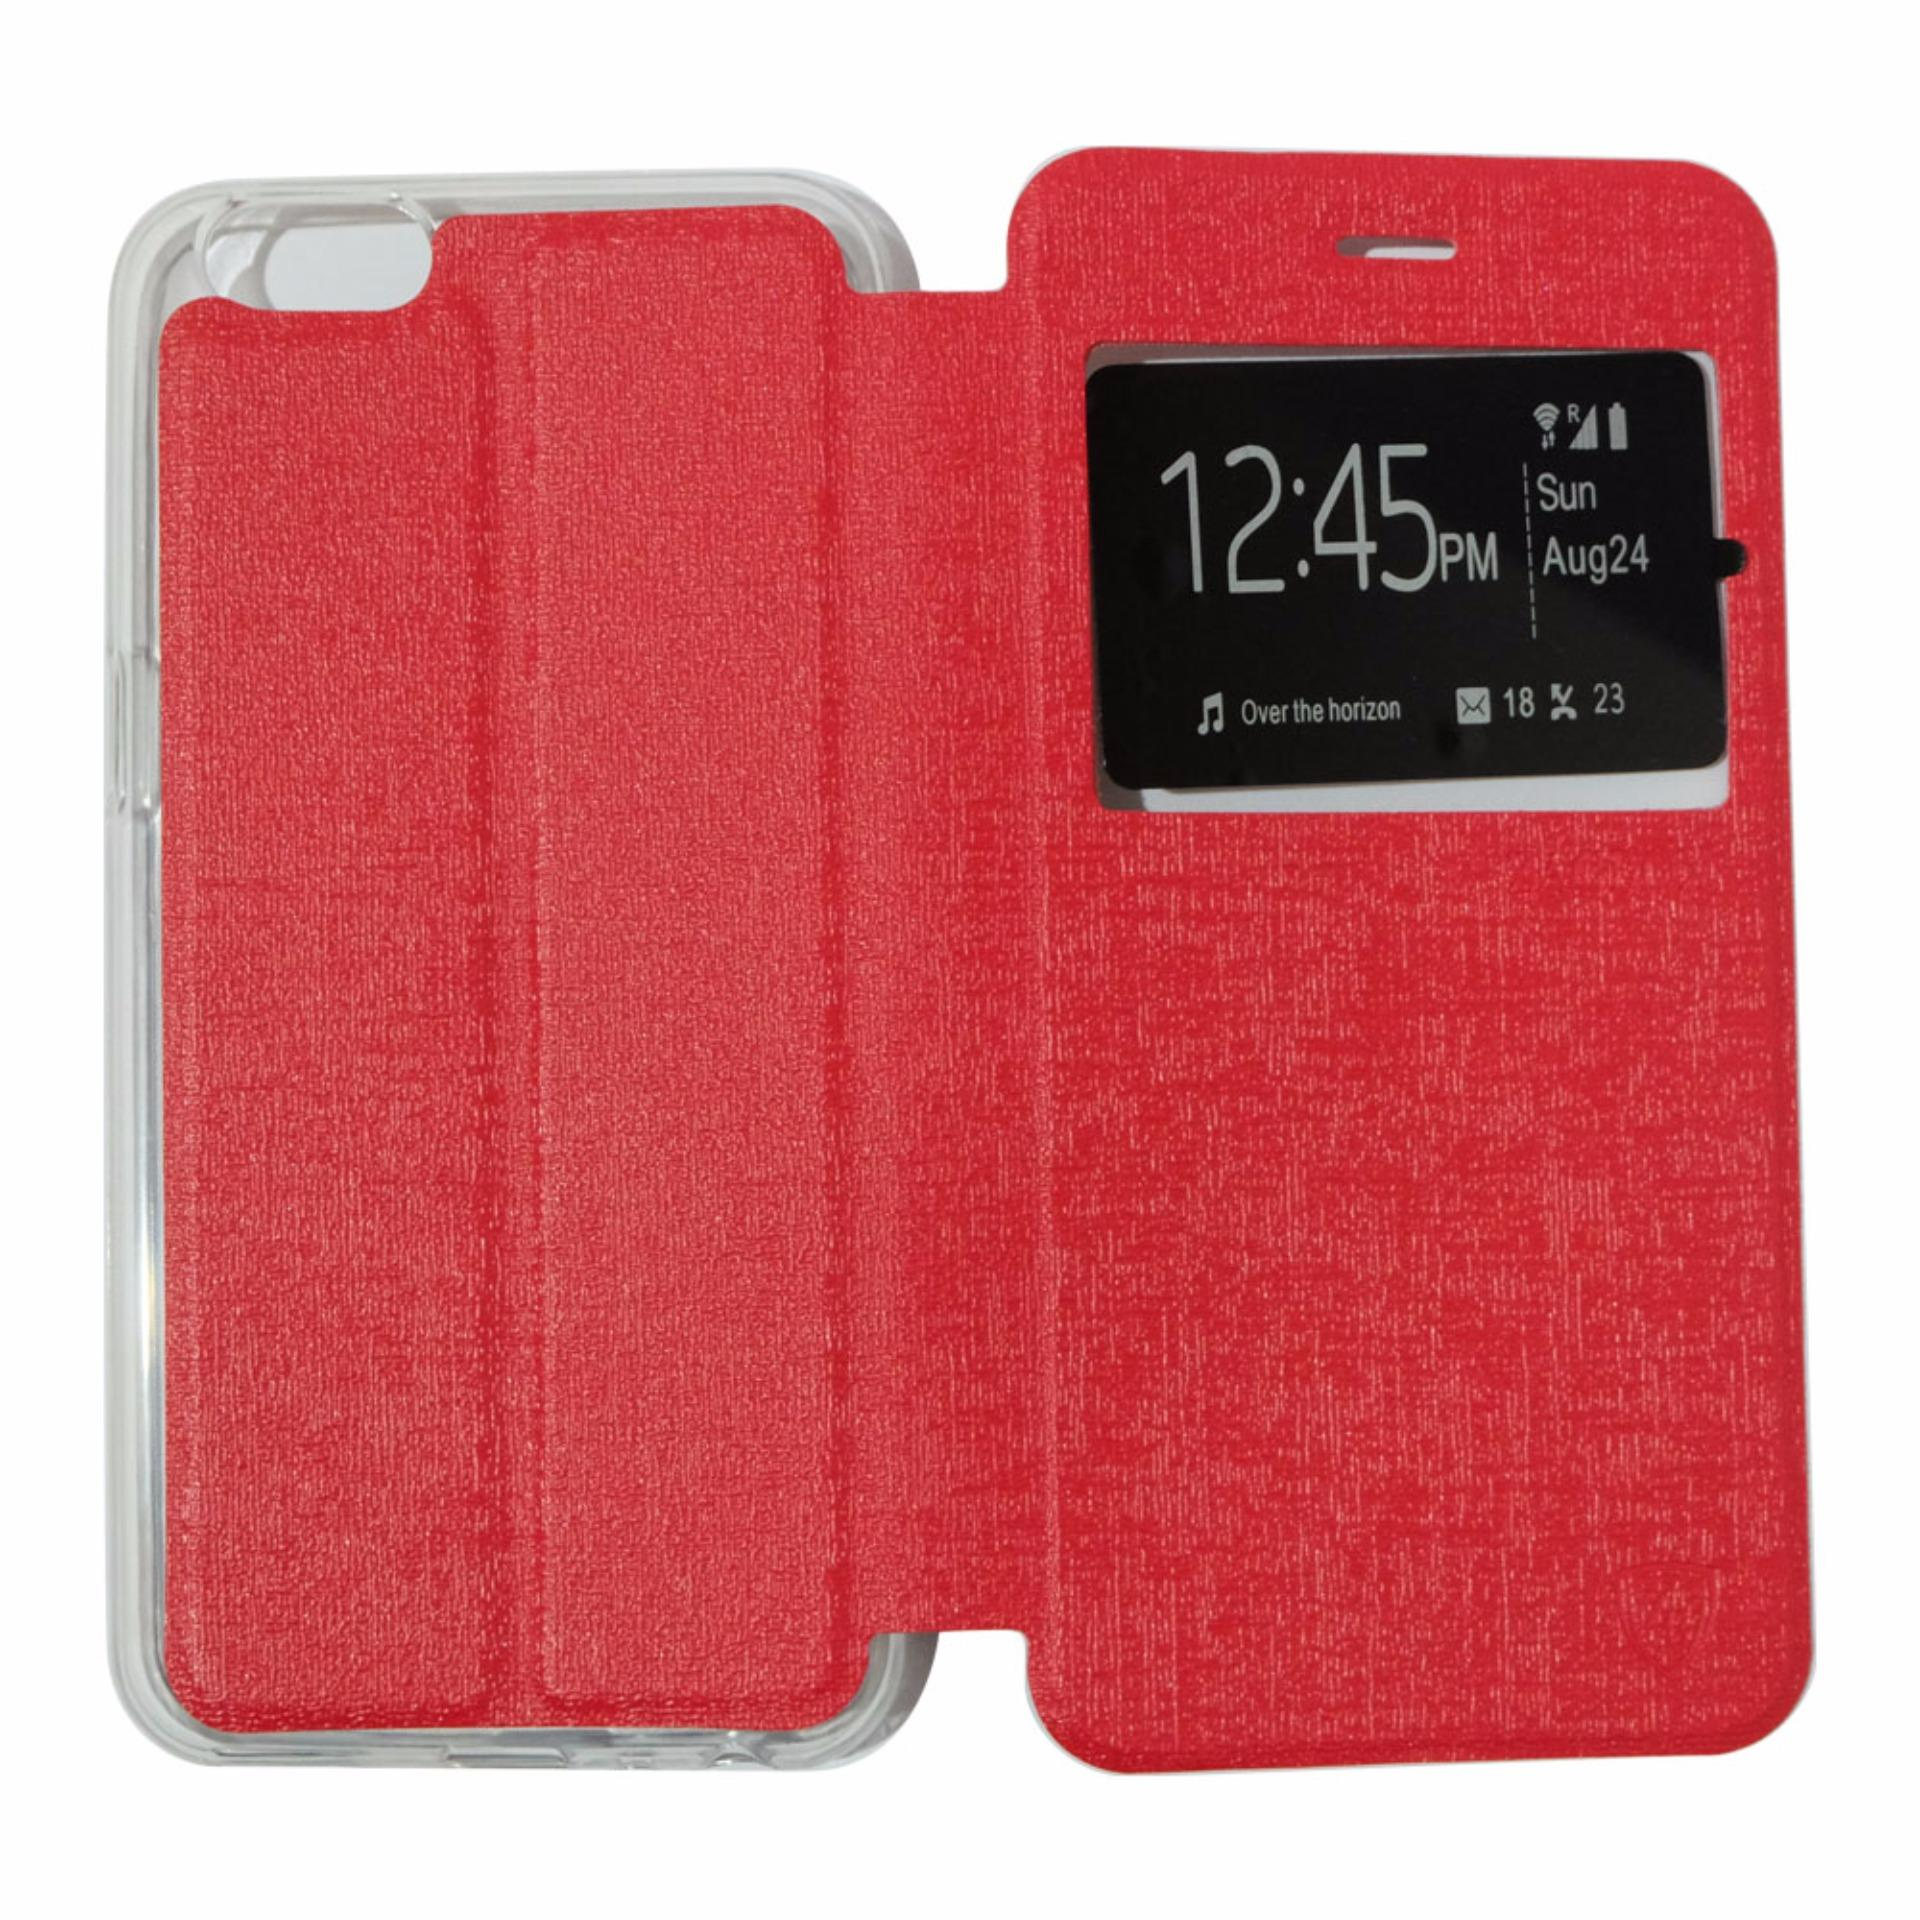 ... Ume Leather Cover Oppo Neo 7 A33 Leather Case Sarung / Flipshell /Flip Cover Kulit ...